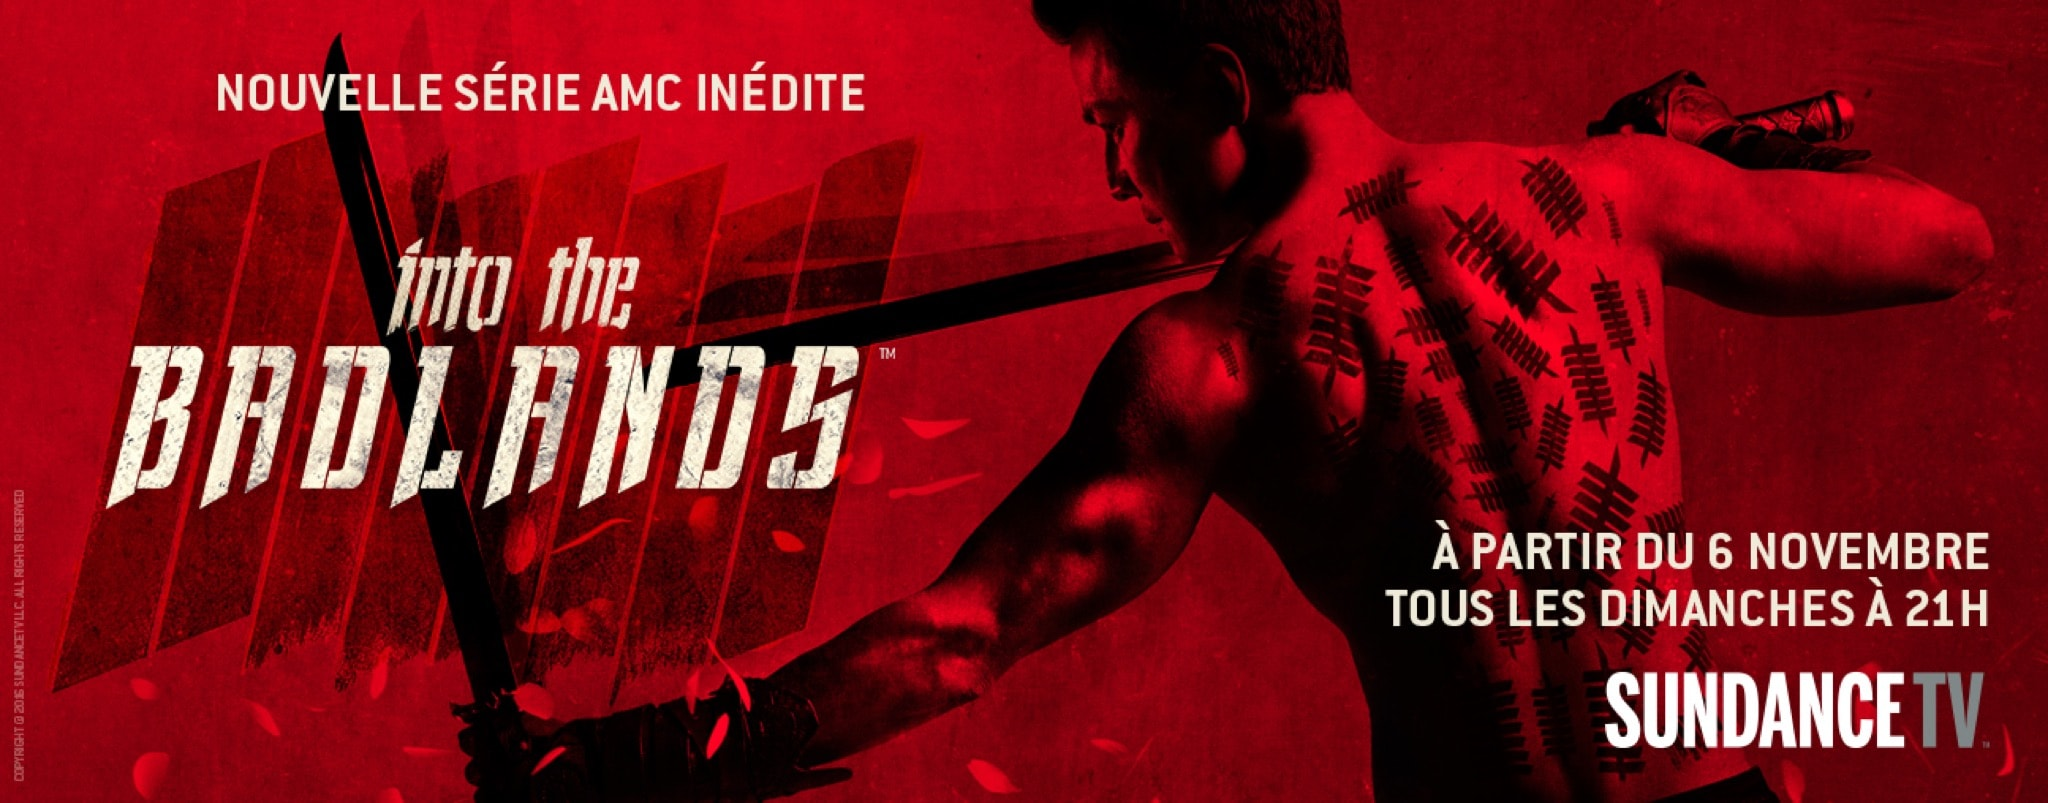 into-the-badlands-saison-1-affiche